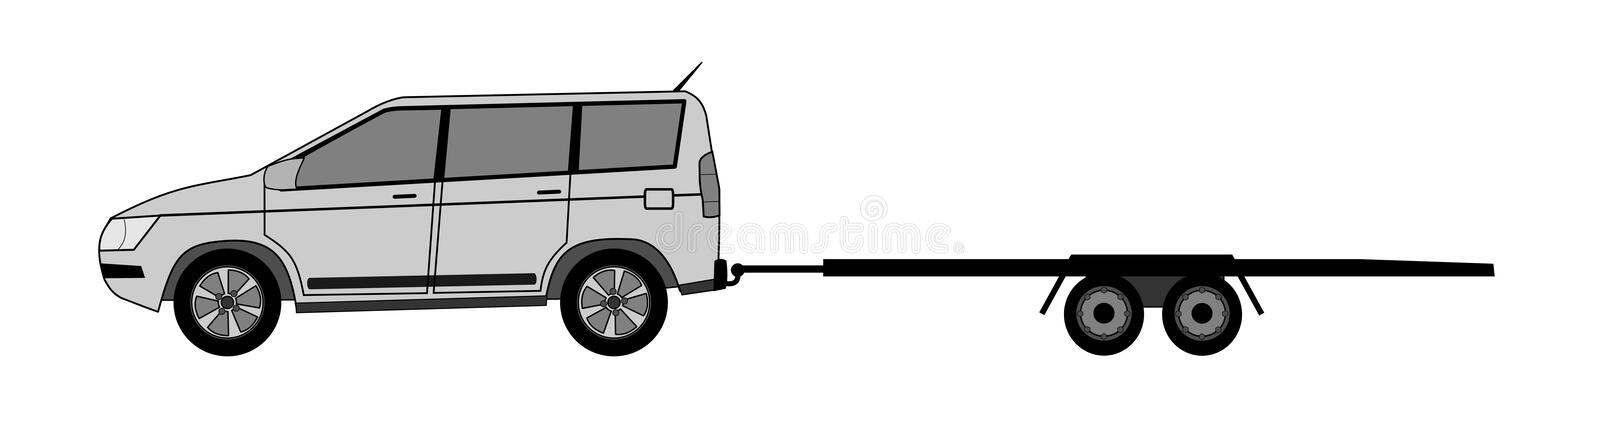 Offroad car with trailer stock illustration